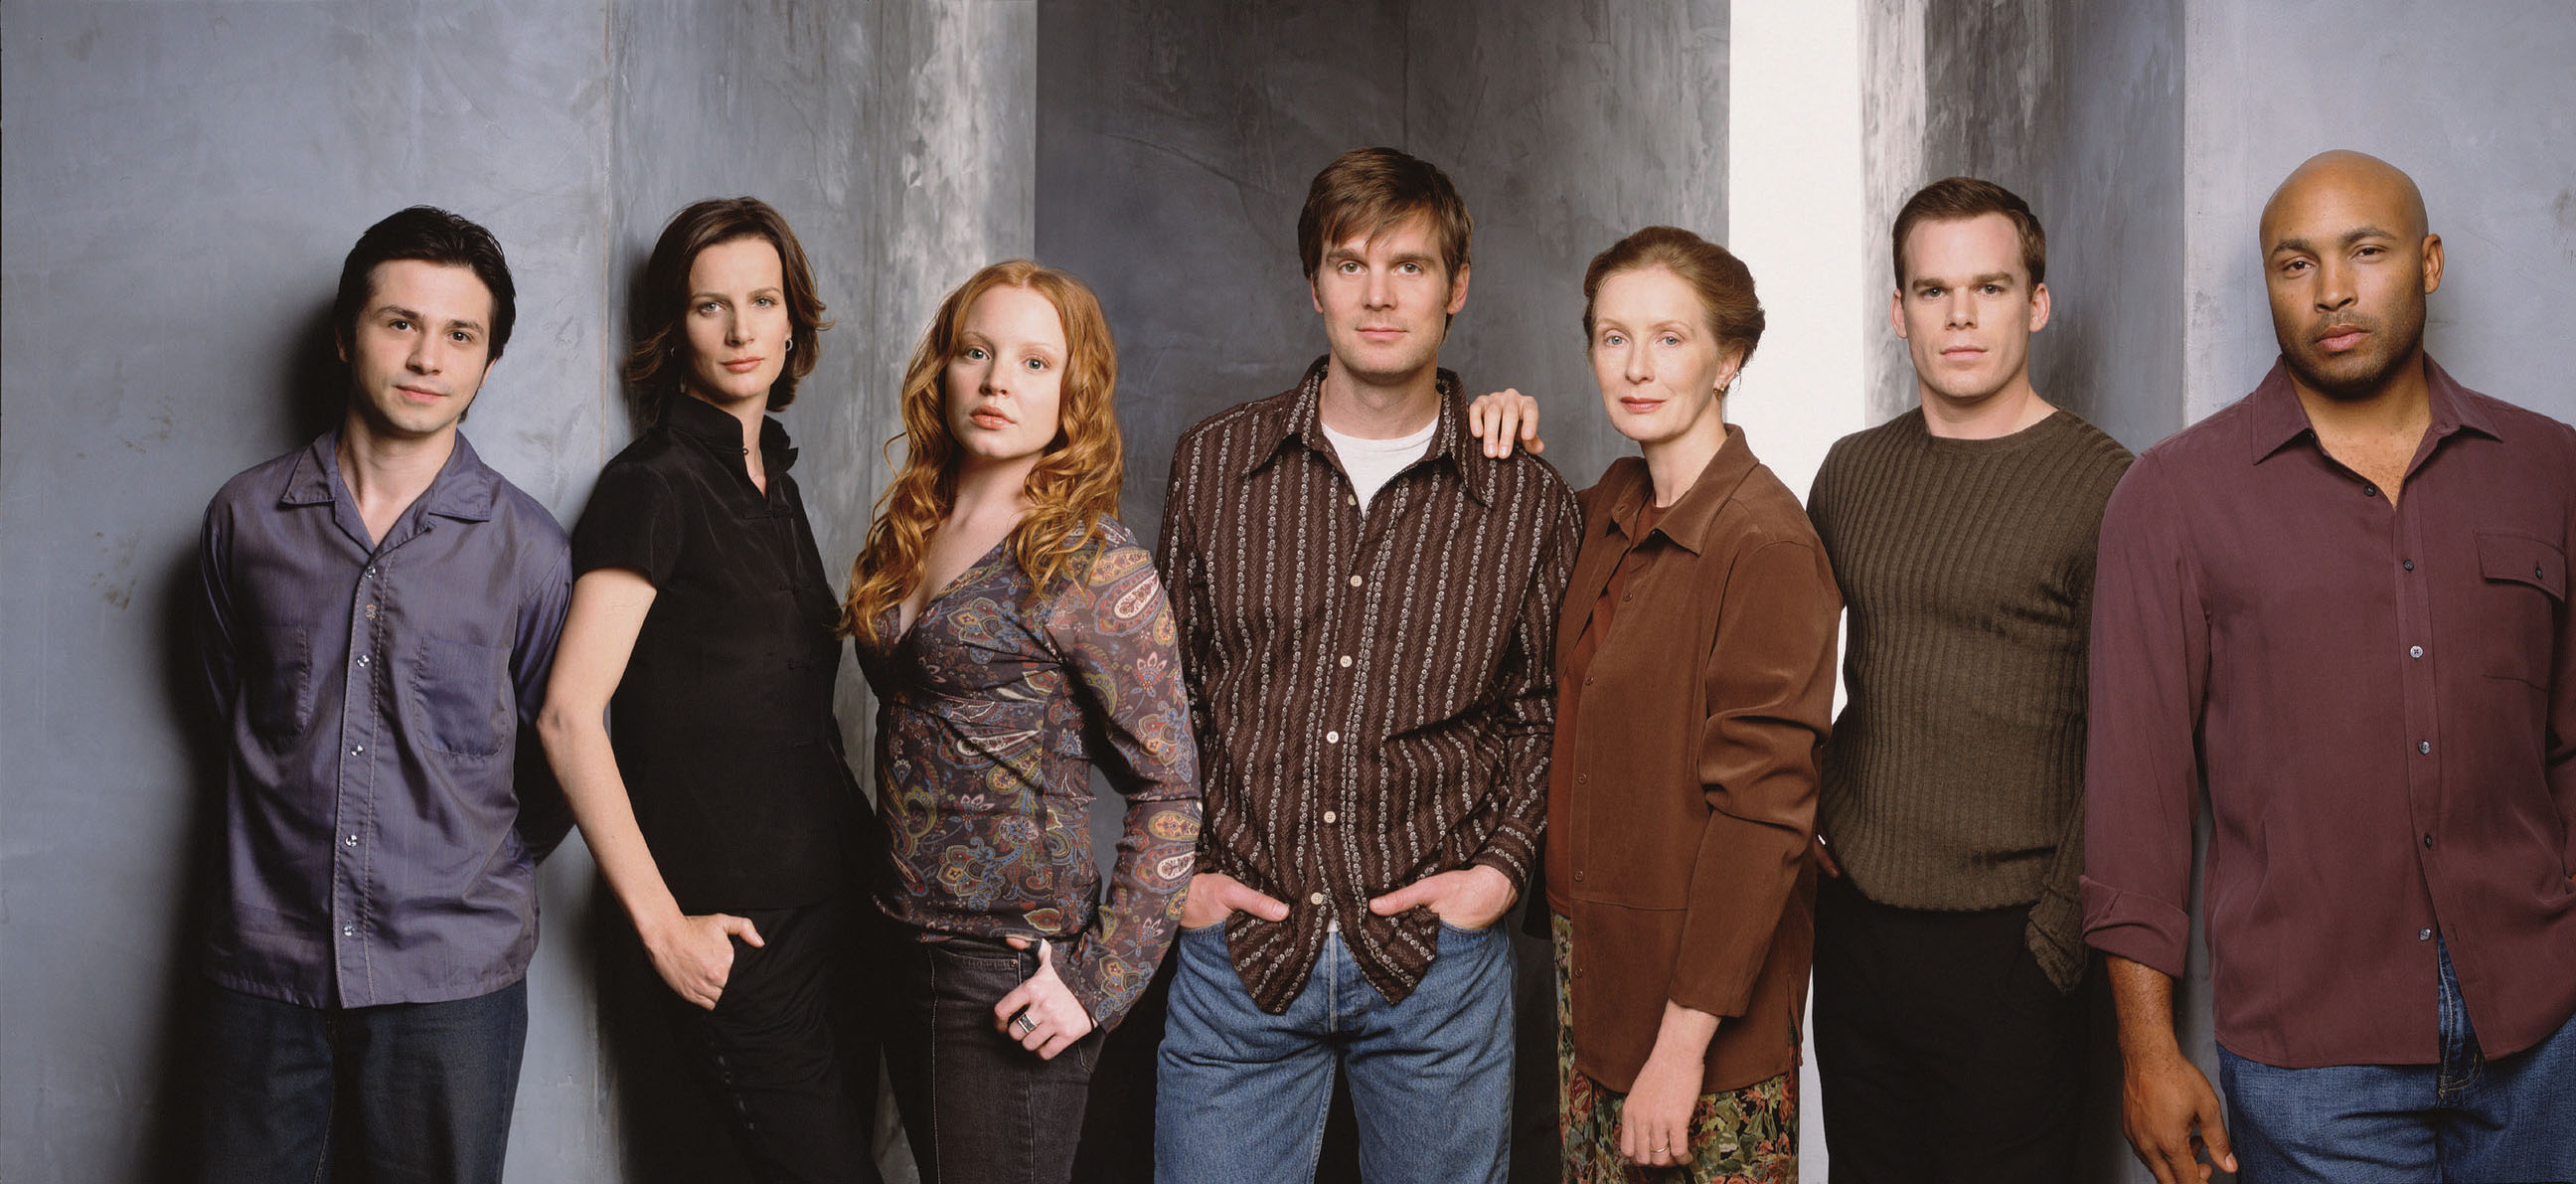 Six Feet Under starring Rachel Griffiths, Peter Krause, Michael C.Hall, Frances Conroy, Lauren Ambrose, Freddy Rodriguez, Mathew St. Patrick, Justina Machado, Jeremy Sisto and James Cromwell